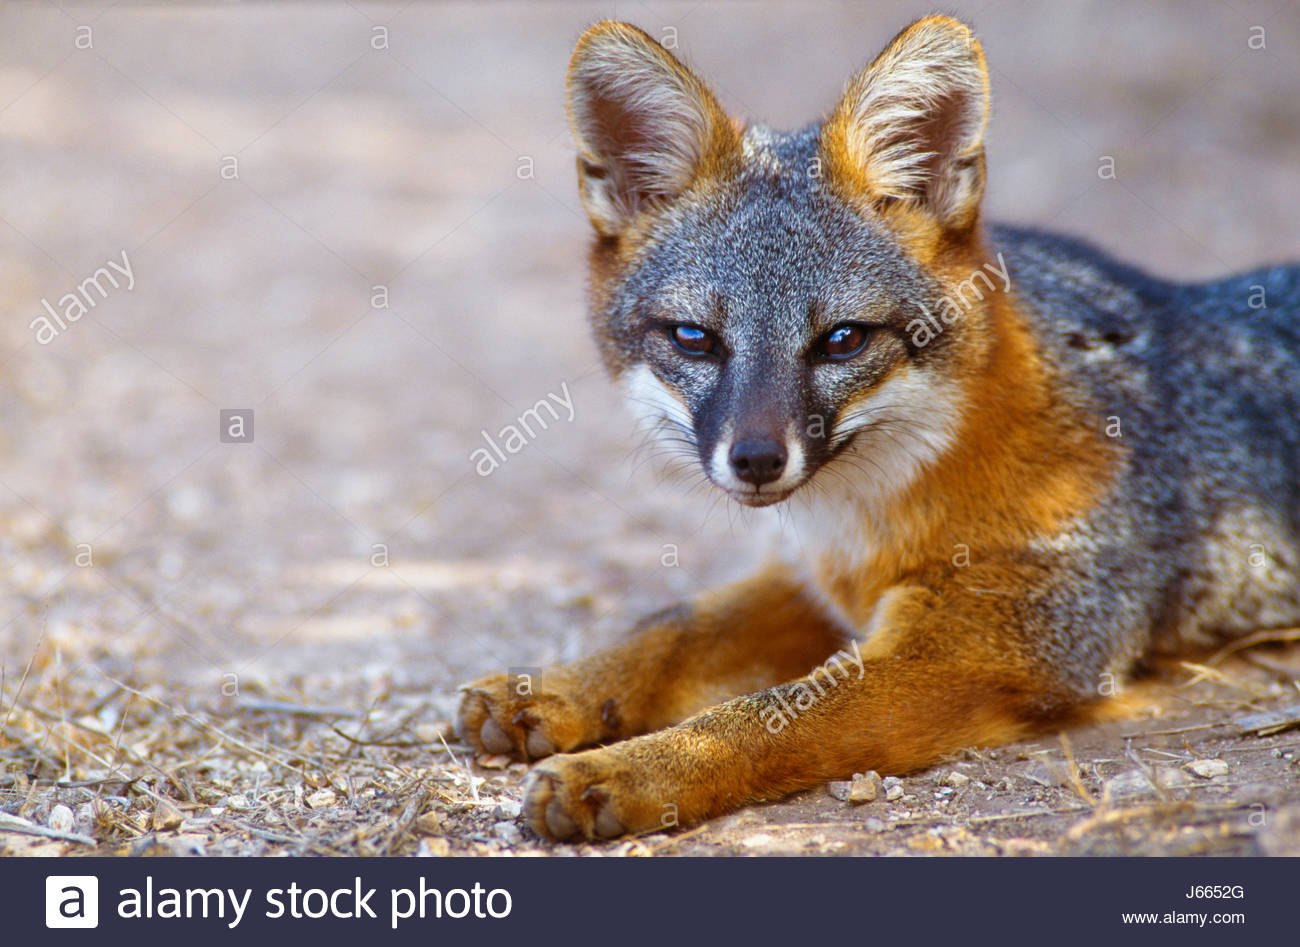 350606-1008   Copyright:  George H. H. Huey  The Island fox [endangered species].  Channel Islands National Park, - Stock Image